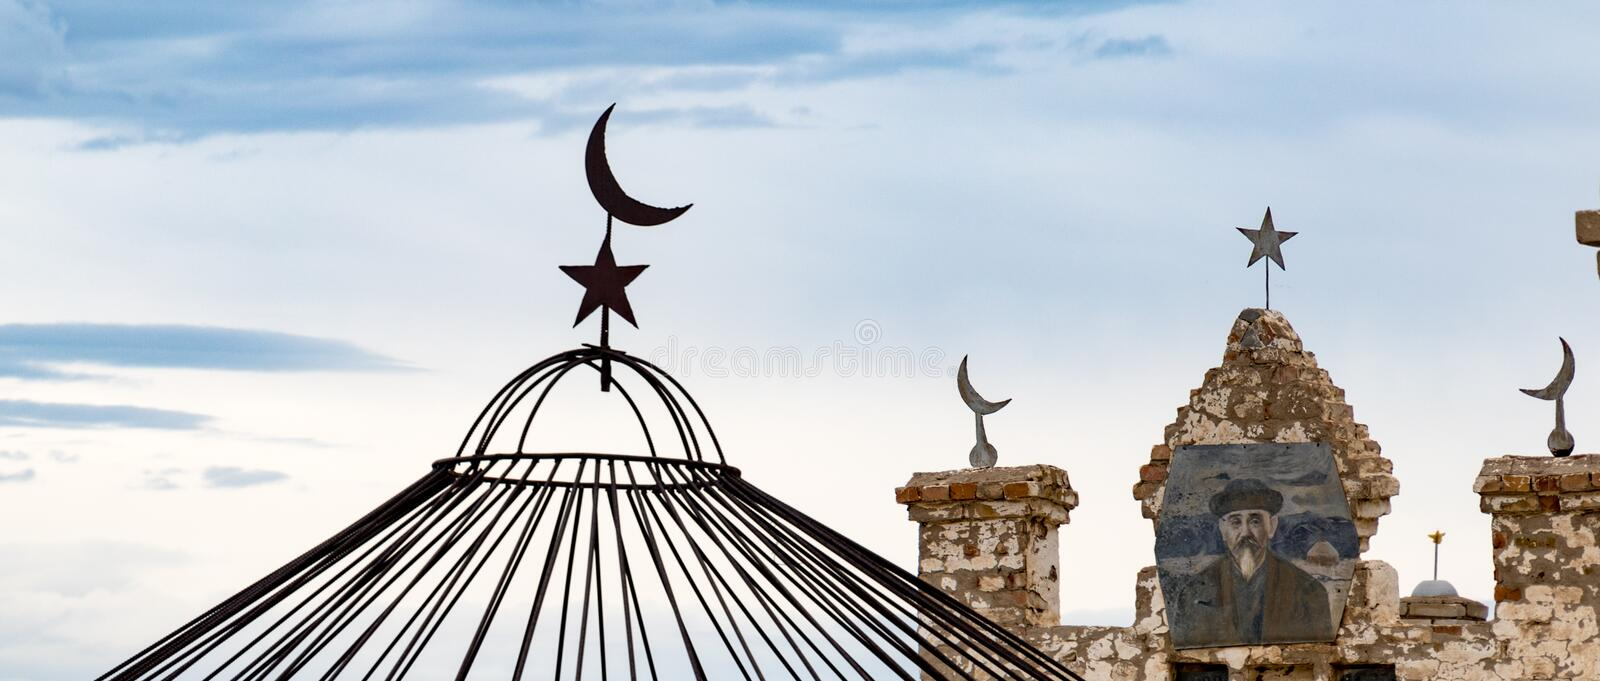 Cemetary roof ornaments royalty free stock photos